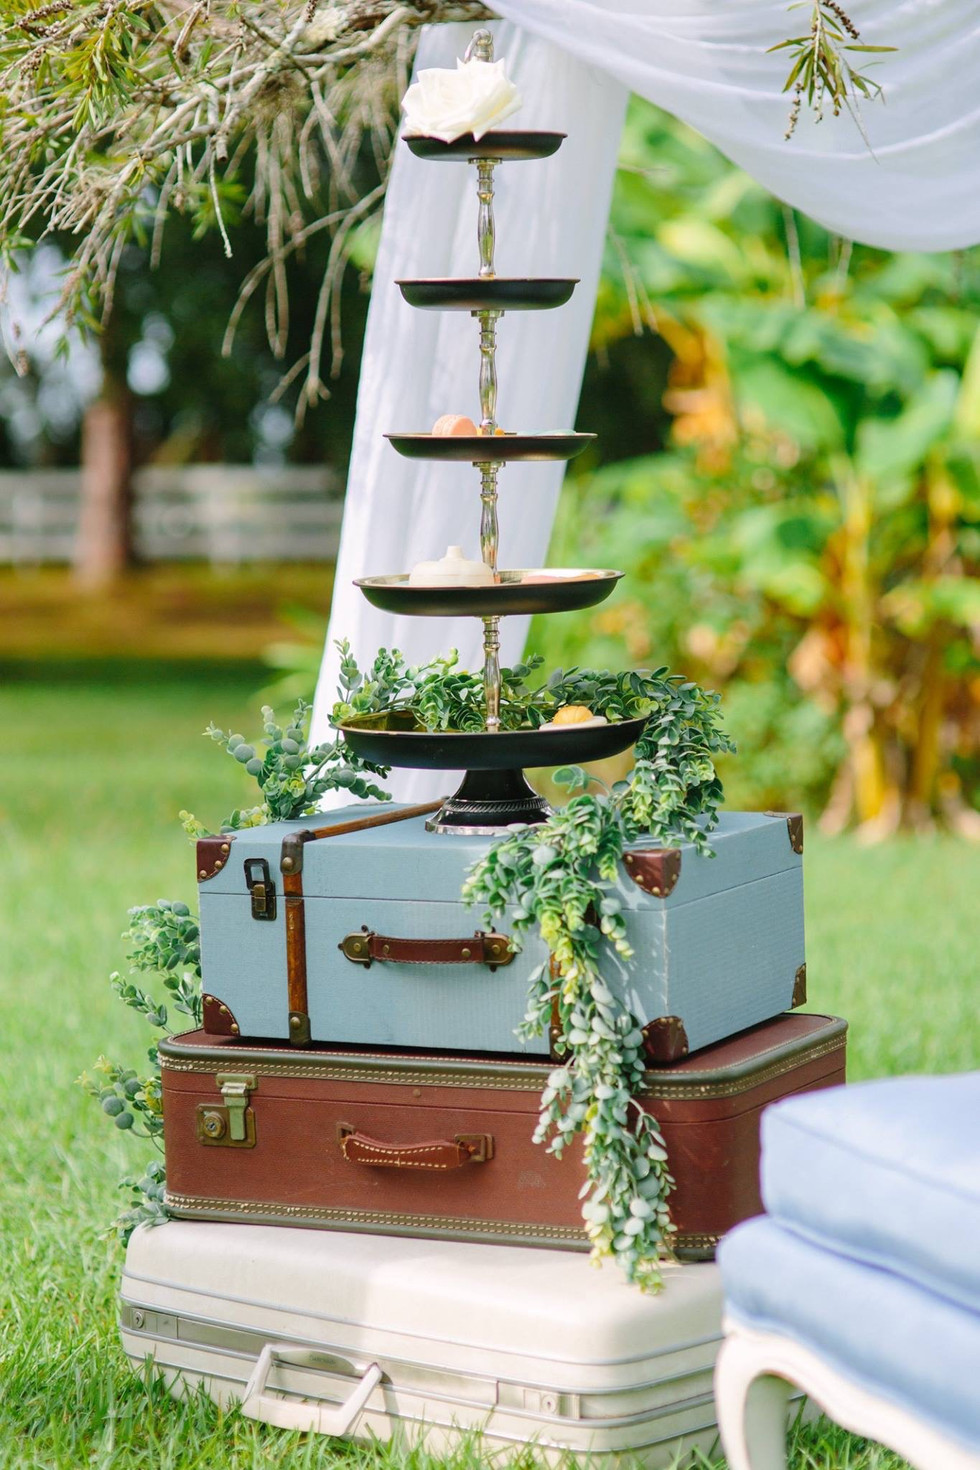 Suitcases, Props & Rugs